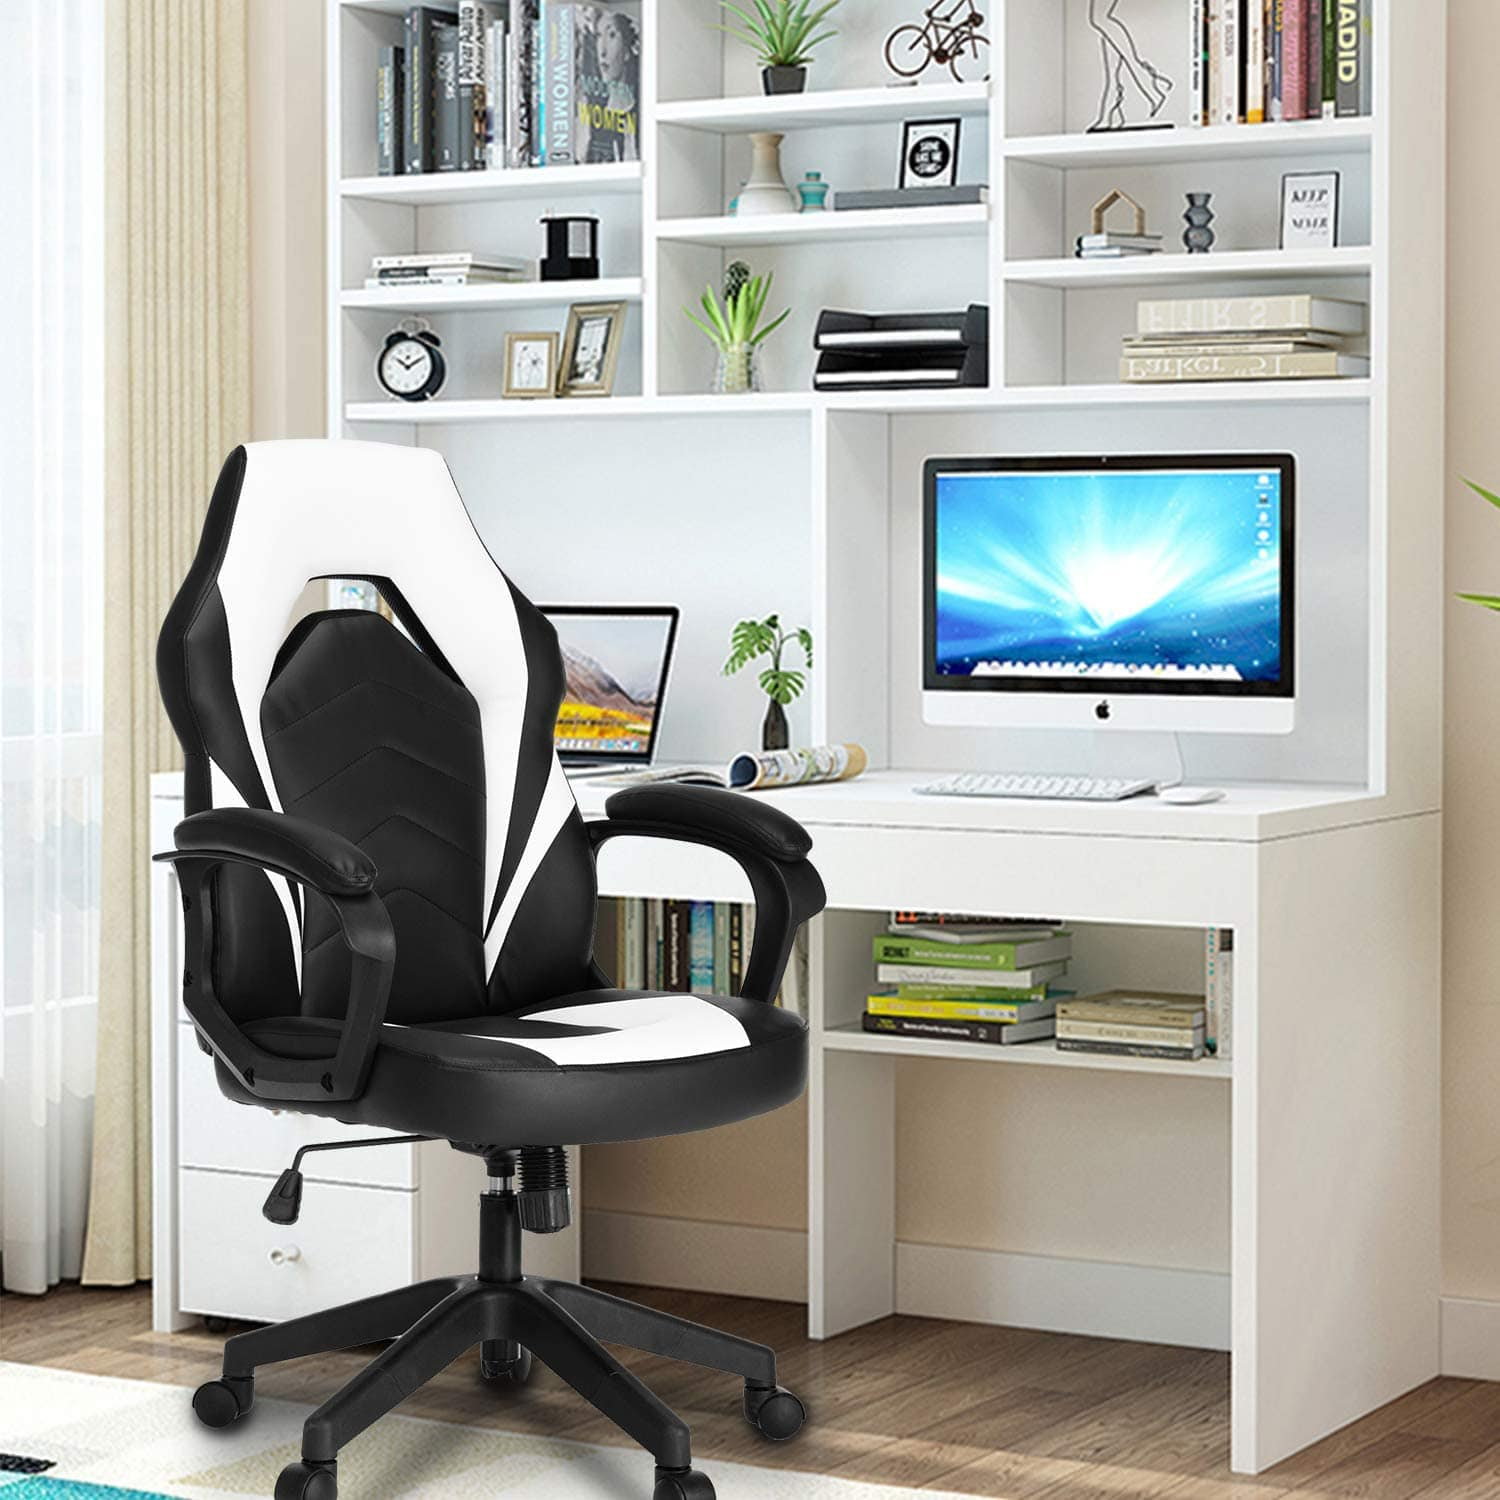 SMUGDESK Racing Gaming Chair Executive Bonded Leather Computer Office Chair with Padding Armrest White